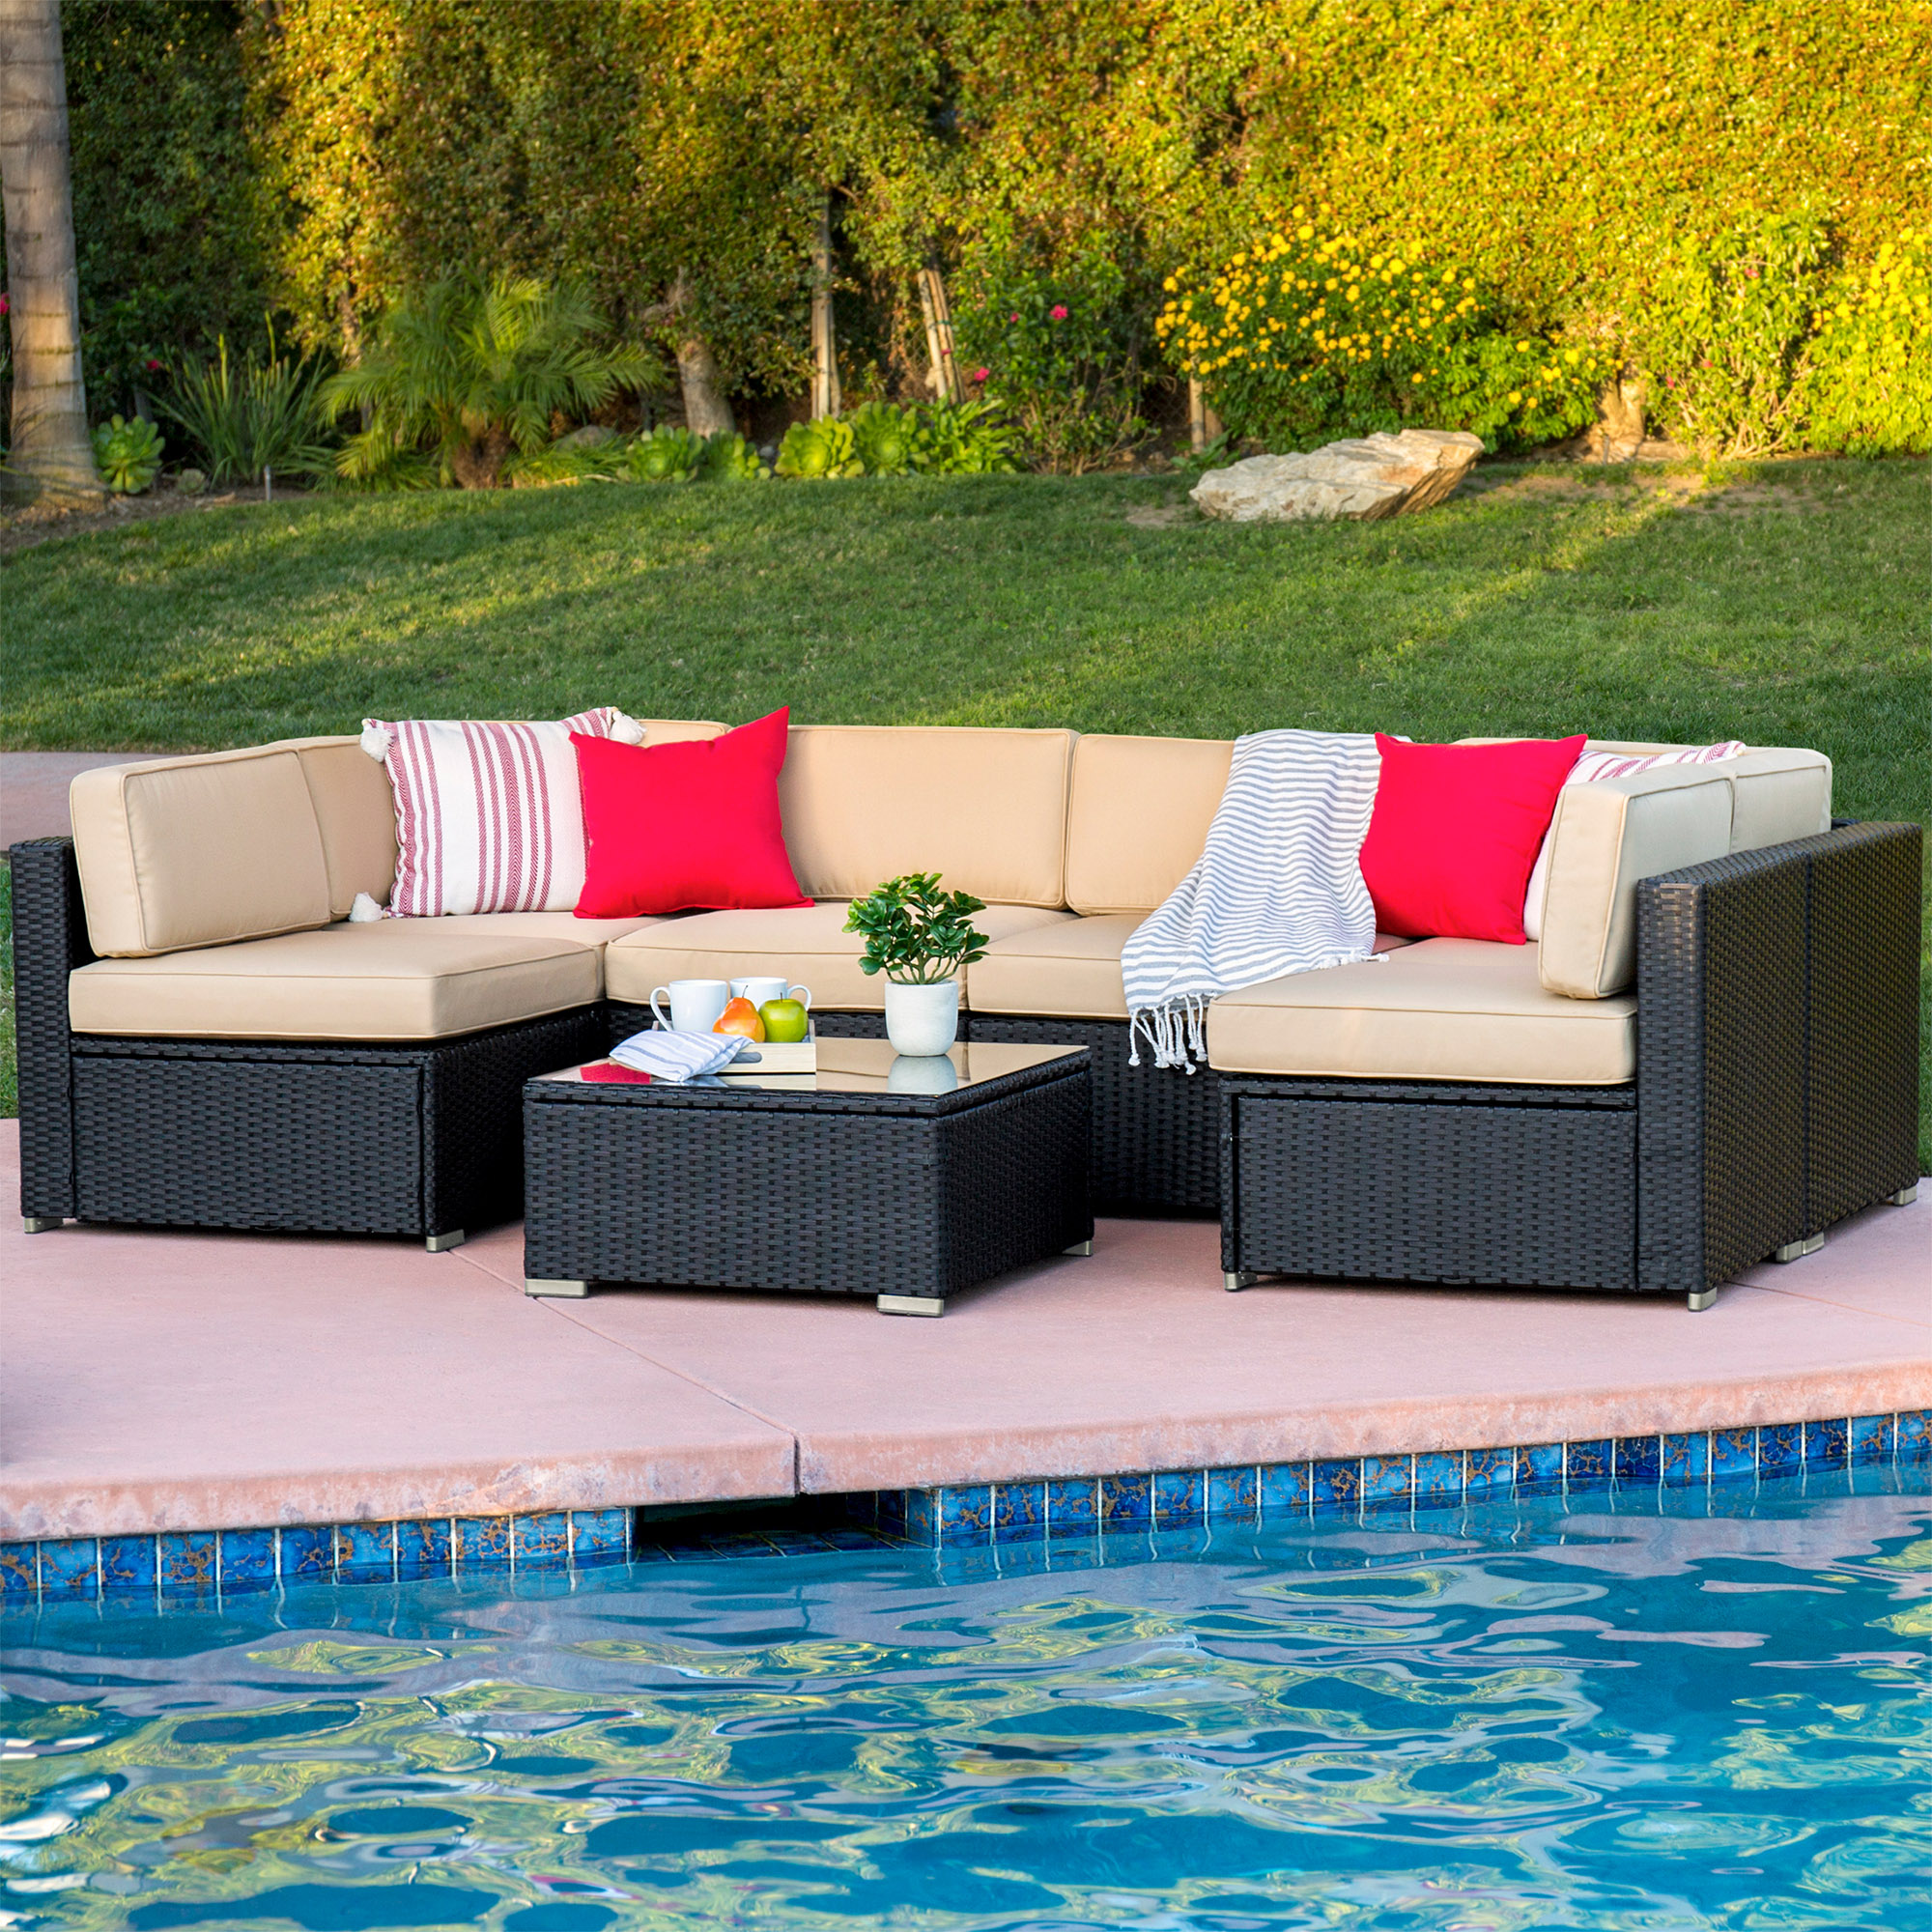 url seat getimage costway rattan furniture sectional pcs patio black garden set cushioned shld s wicker